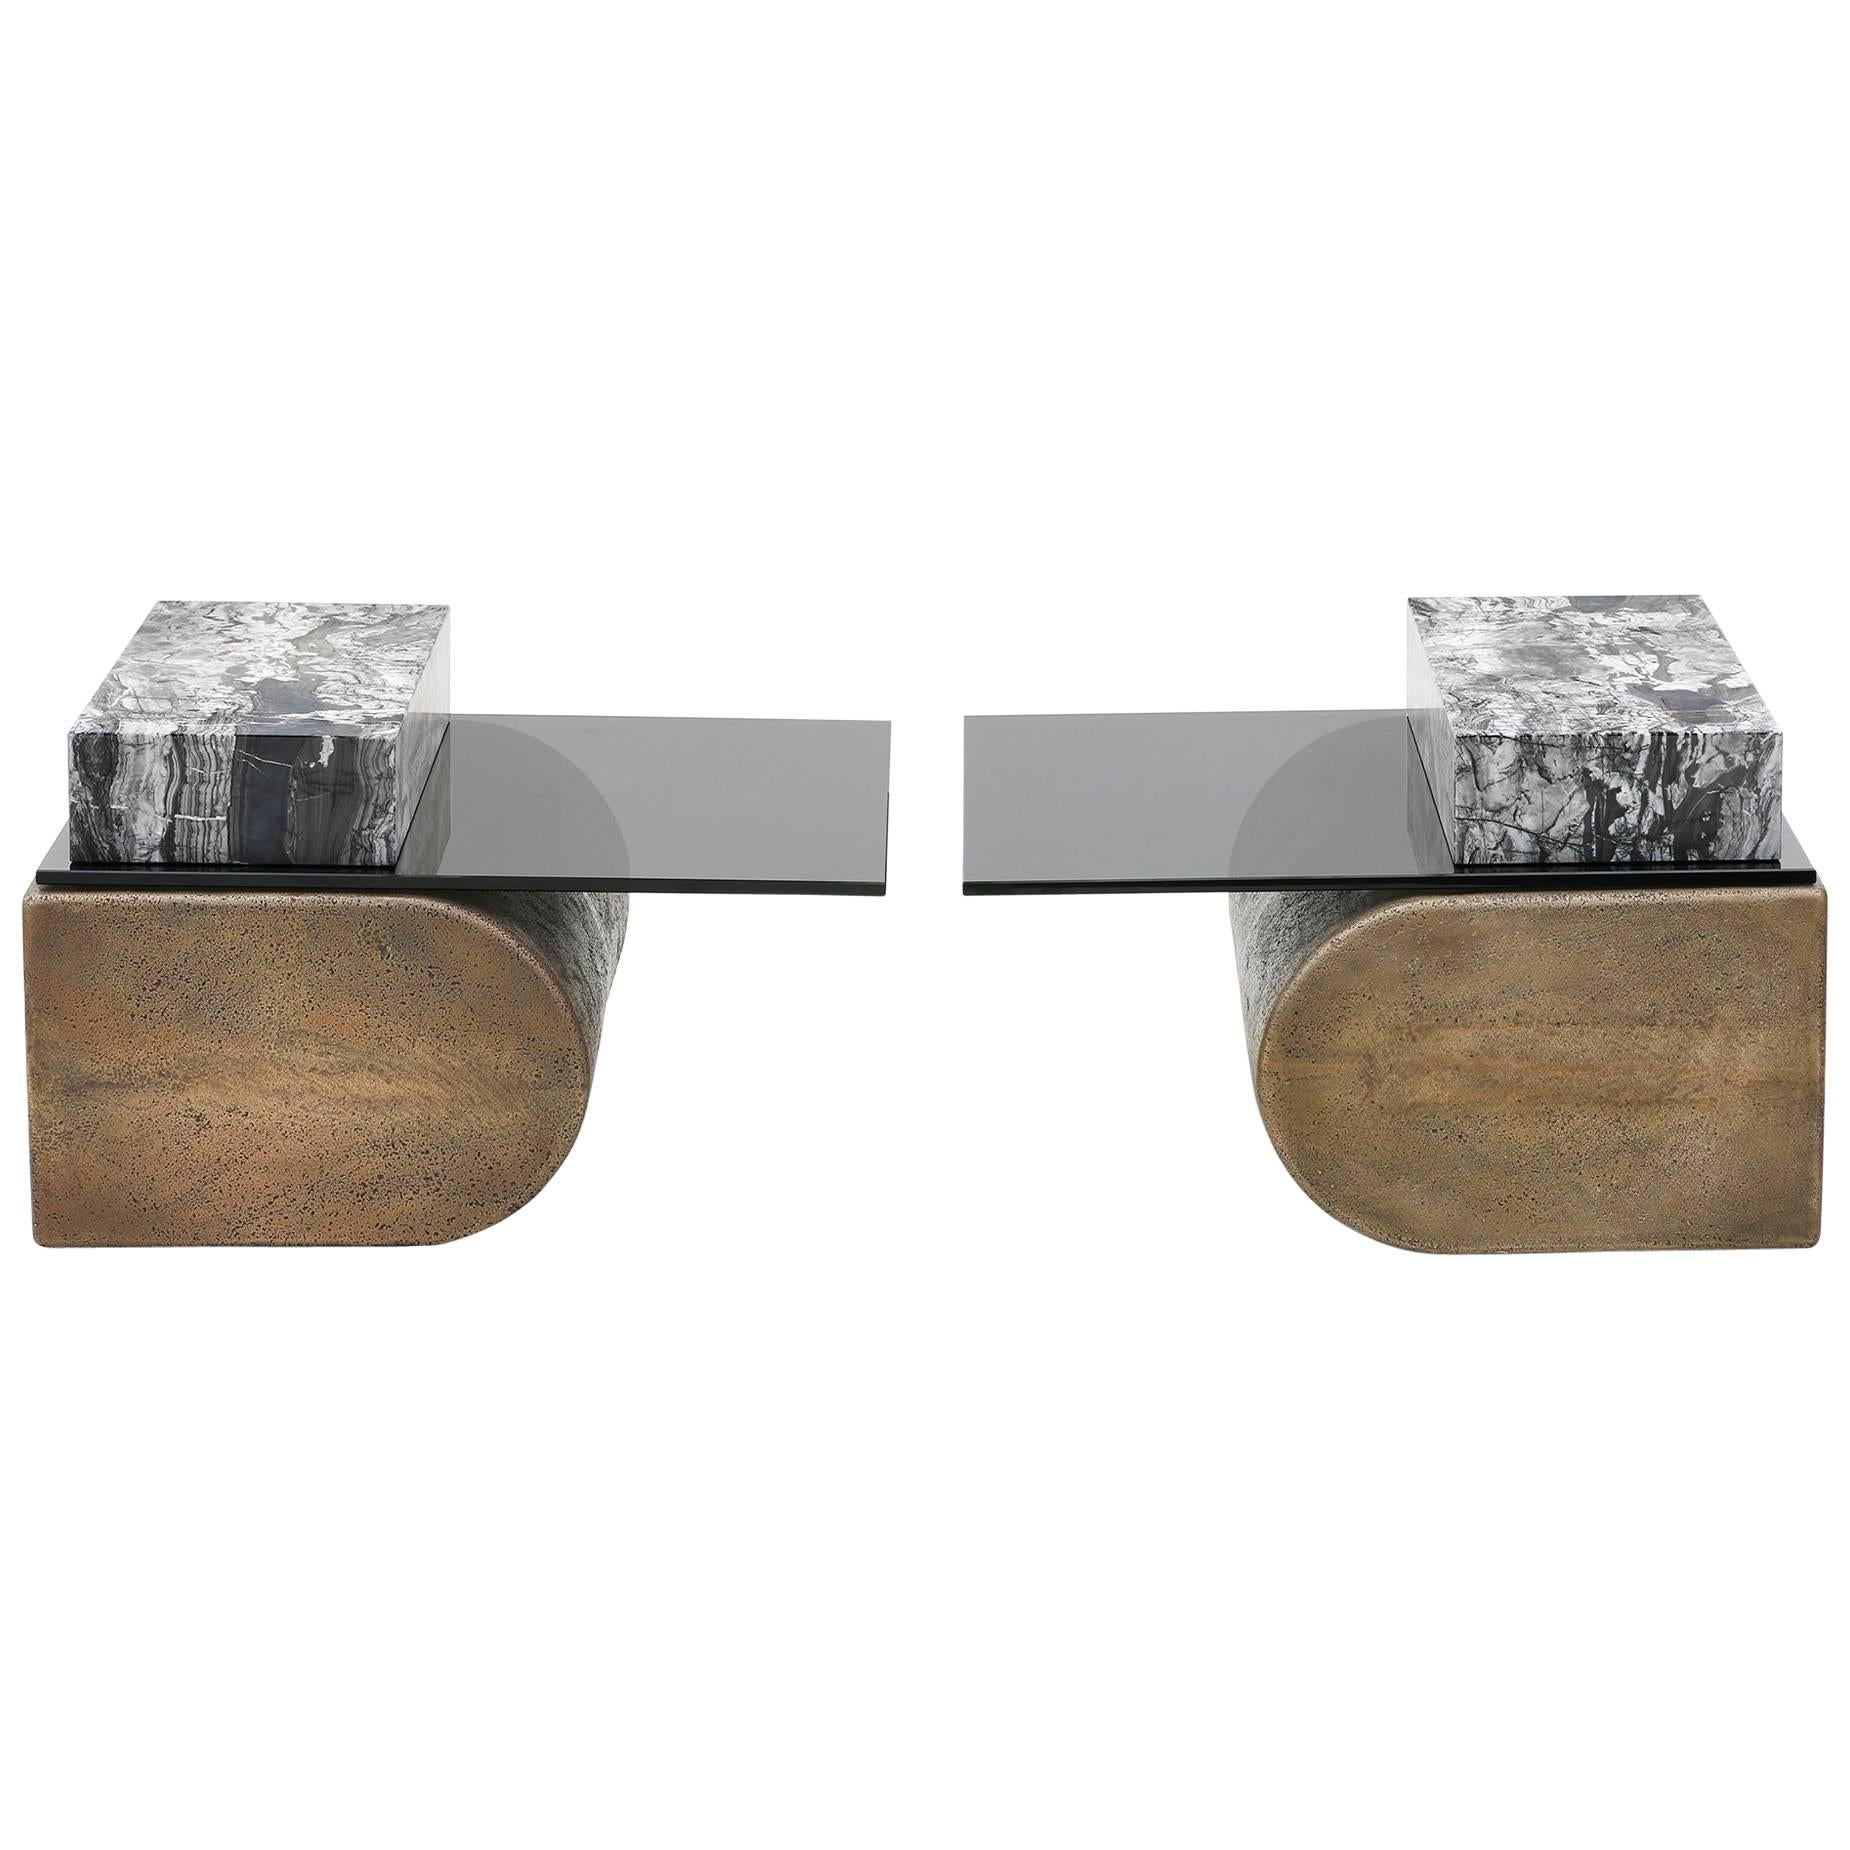 Brian Thoreen Cantilever Tables